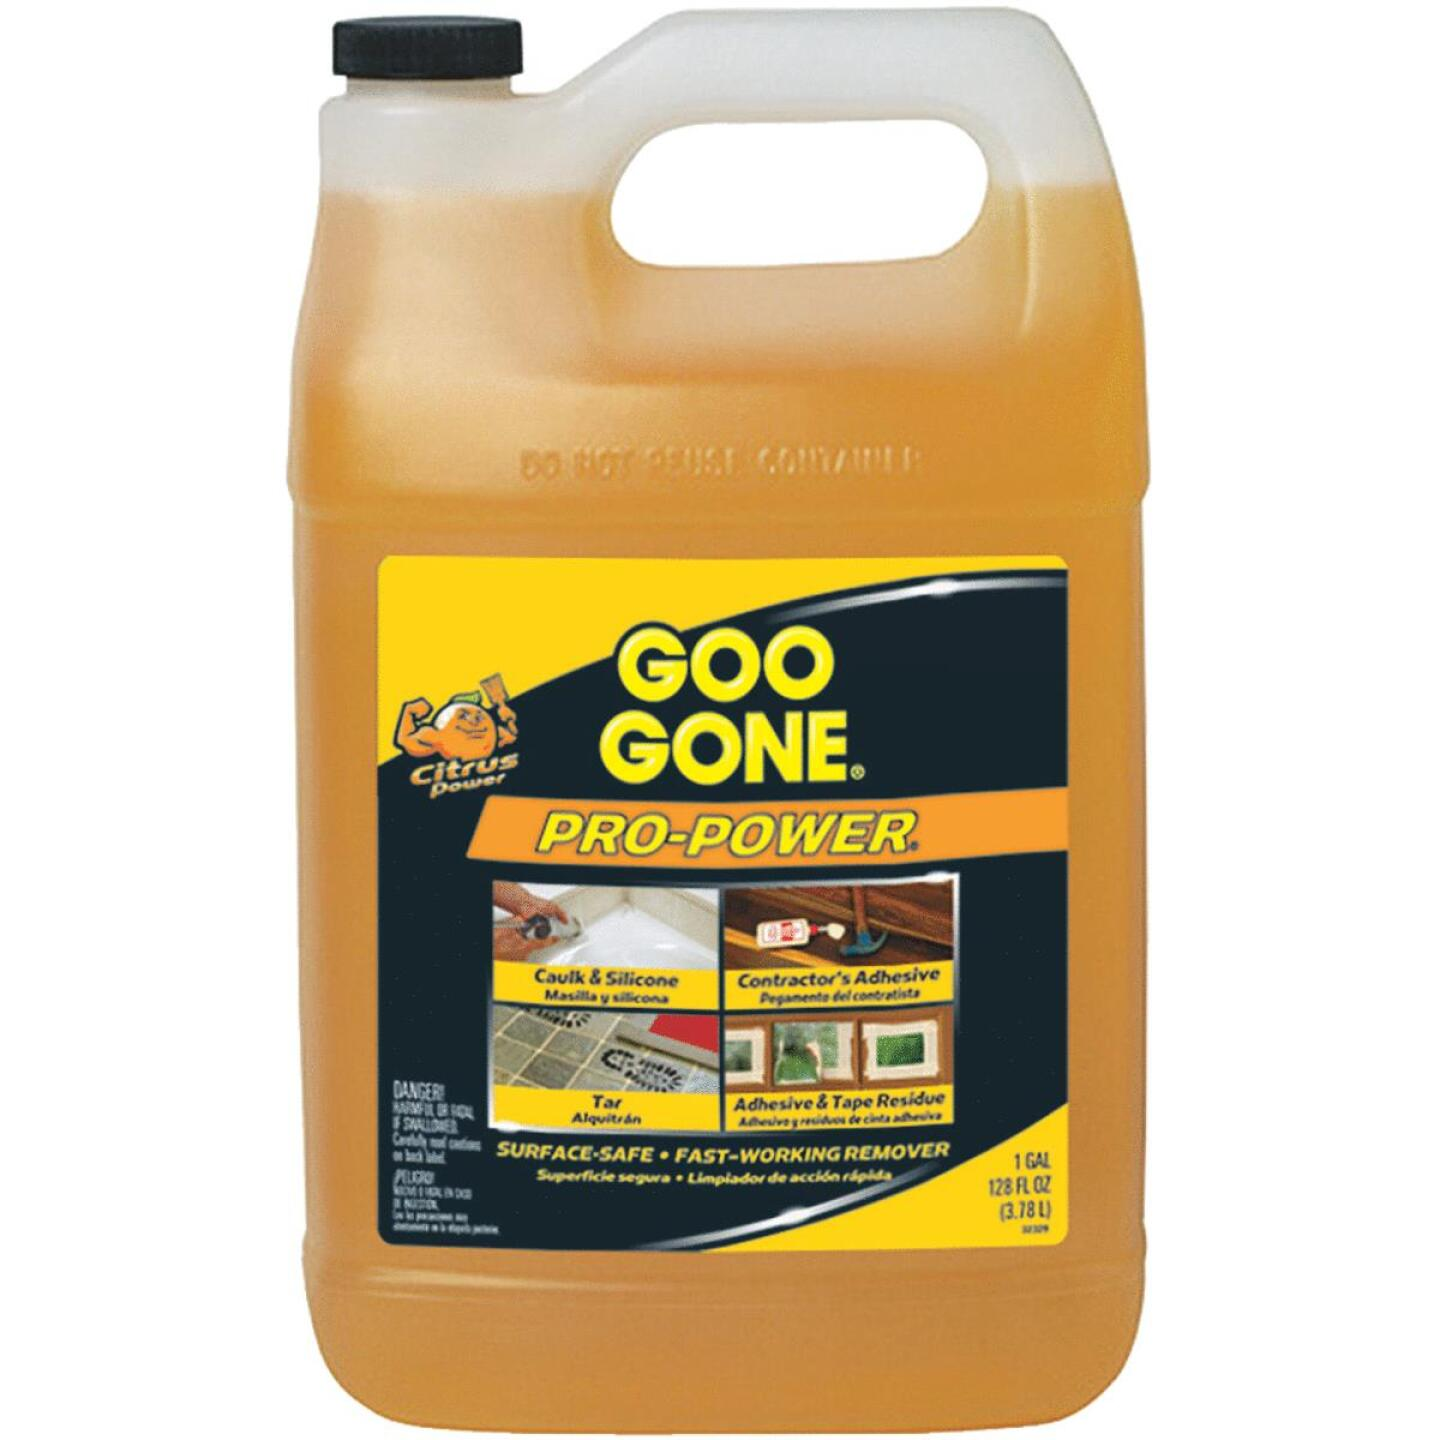 Goo Gone 1 Gal. Pro-Power Adhesive Remover Image 39